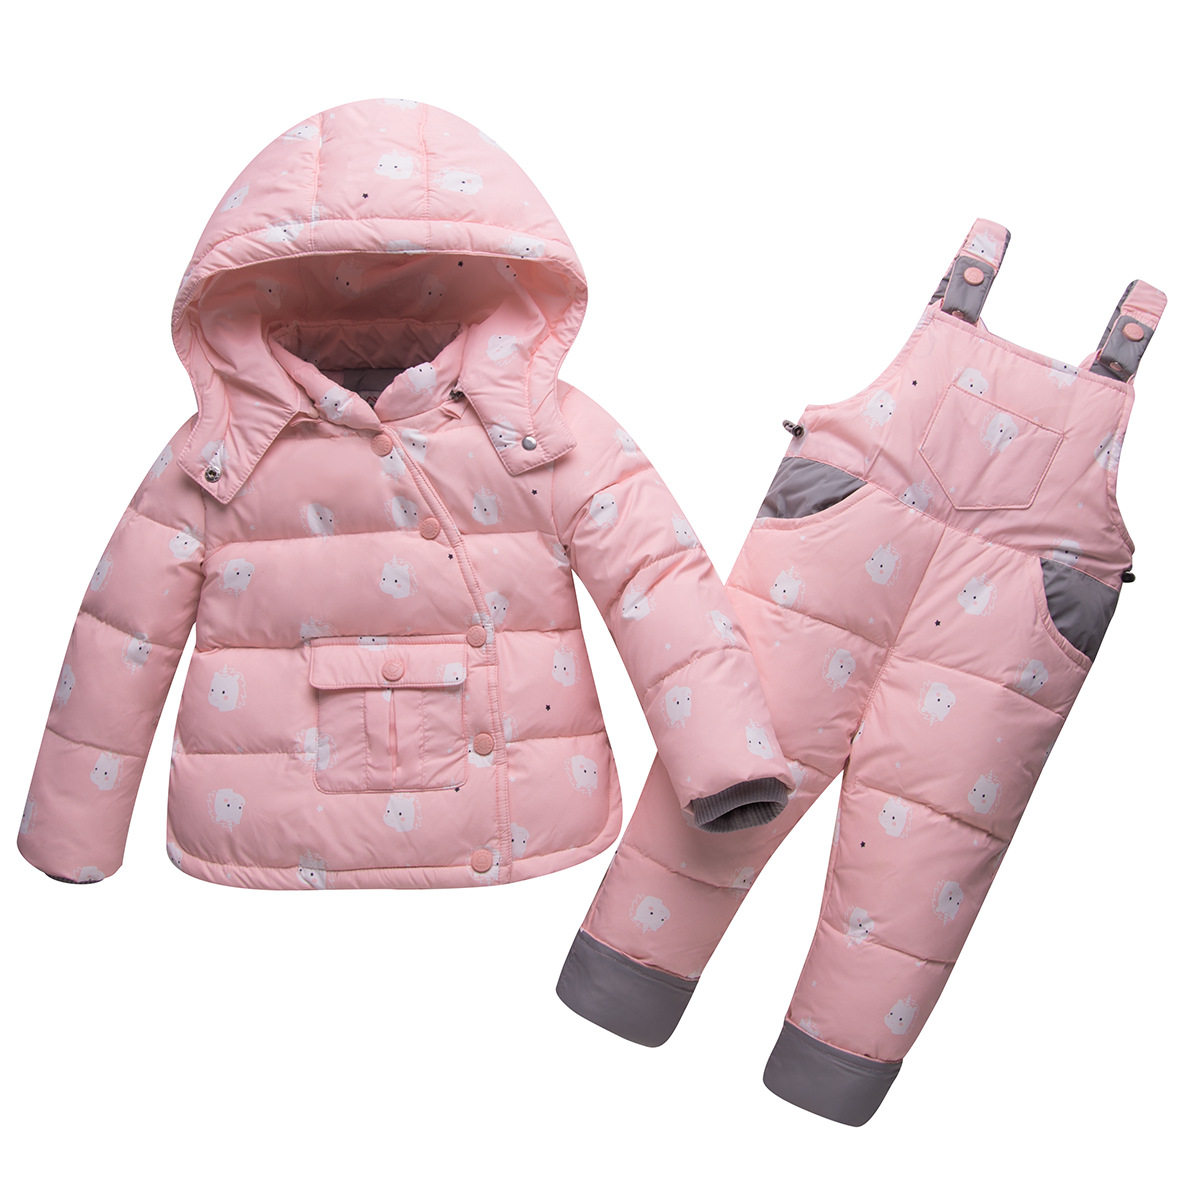 New childrens down suit, authentic girl, 2018 boys, childrens wear, baby, infant, leisure, two piece.New childrens down suit, authentic girl, 2018 boys, childrens wear, baby, infant, leisure, two piece.